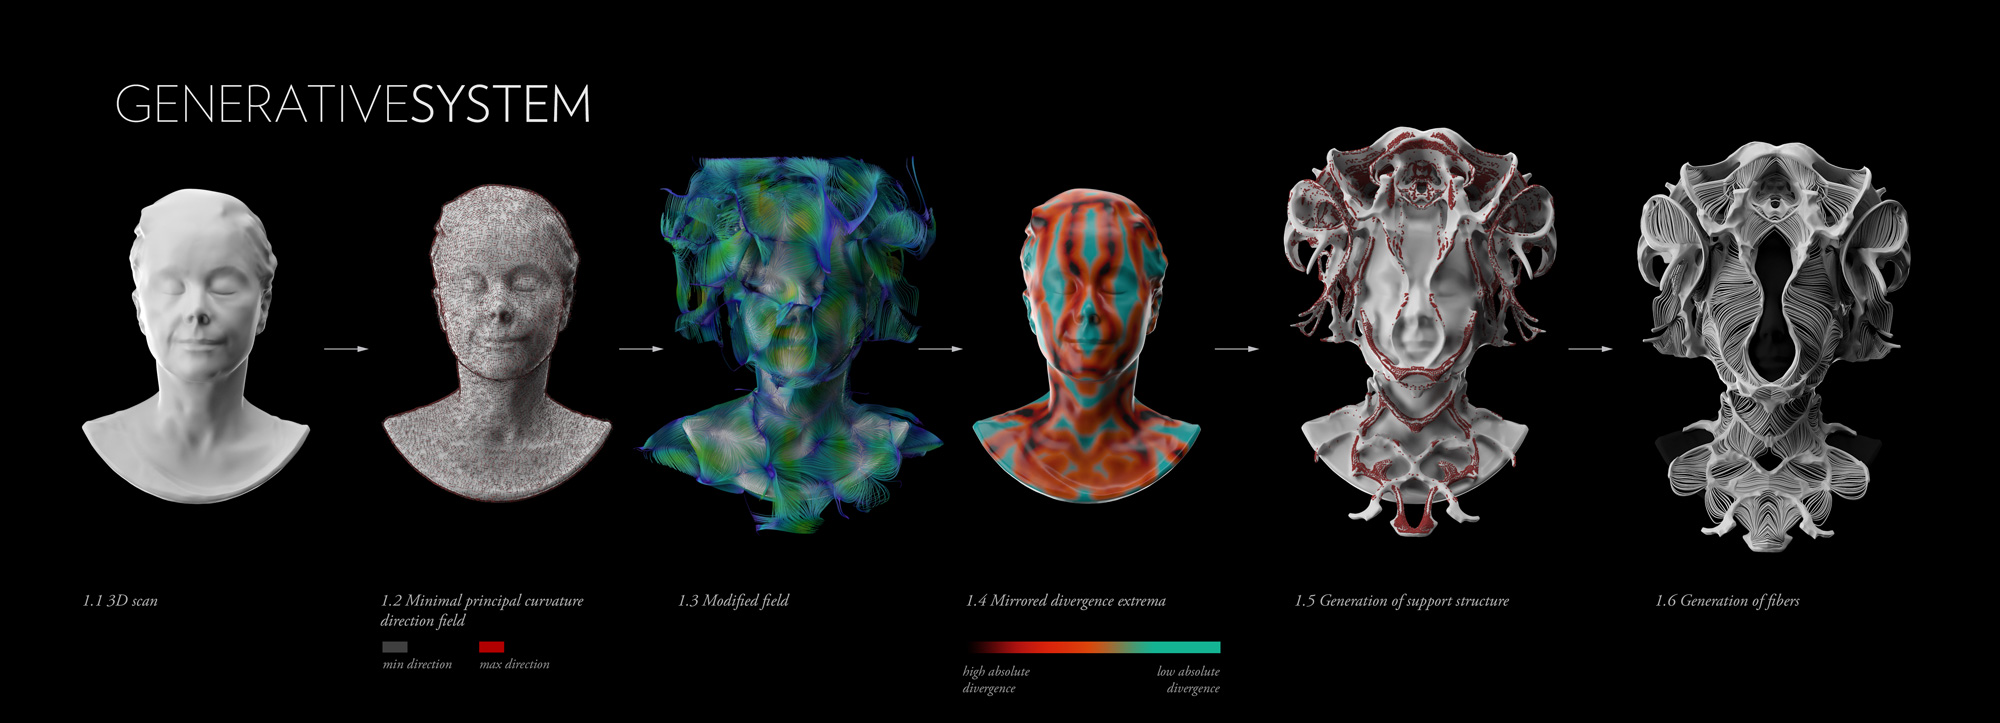 3D rendering of various facial scans manipulated into masks